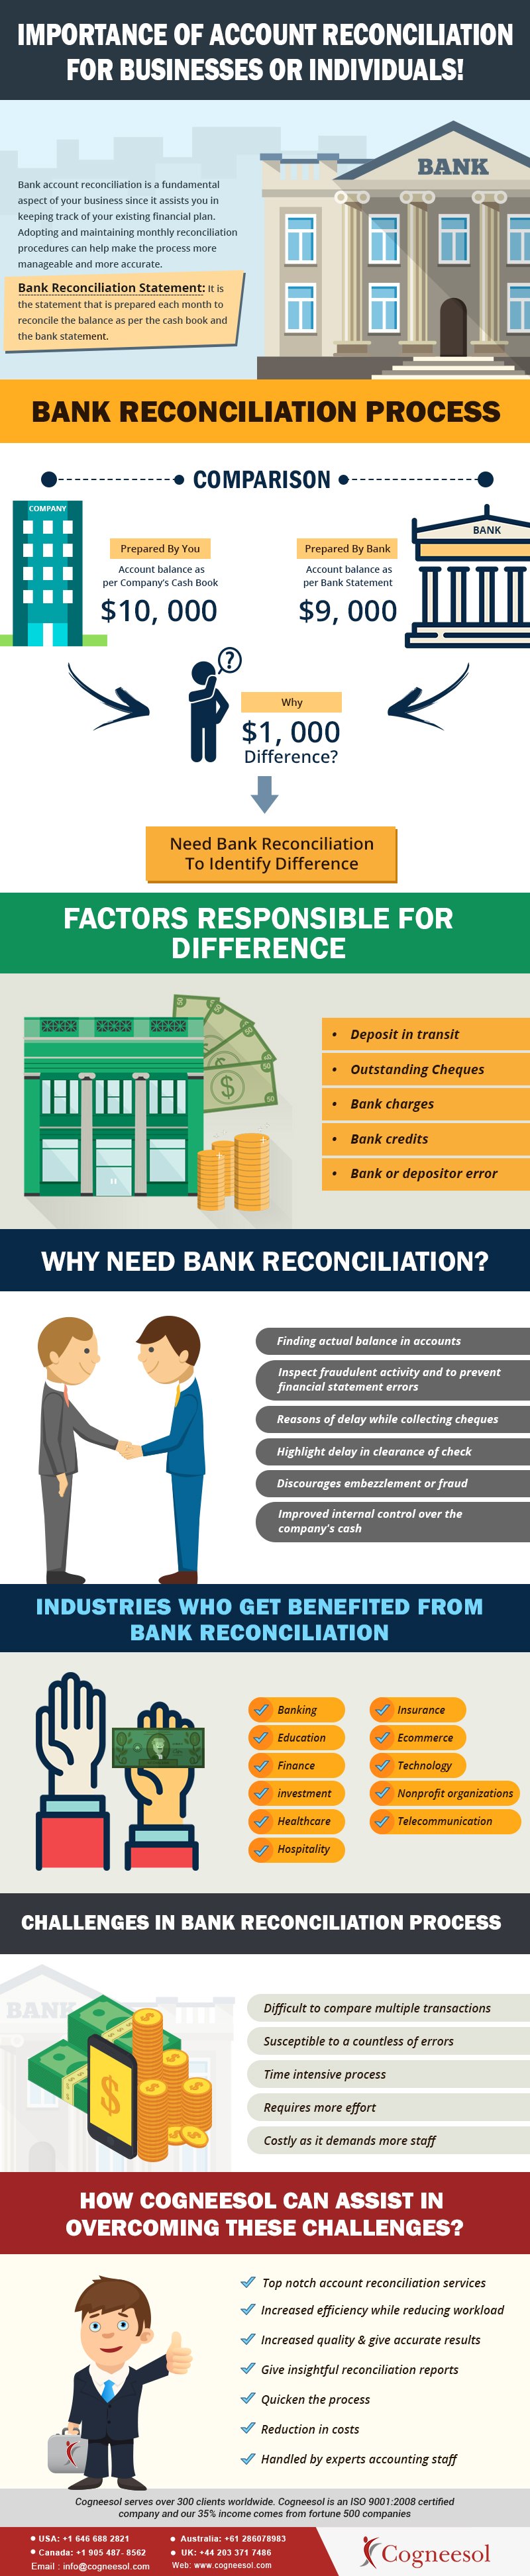 importance of account reconciliation for businesses infographic